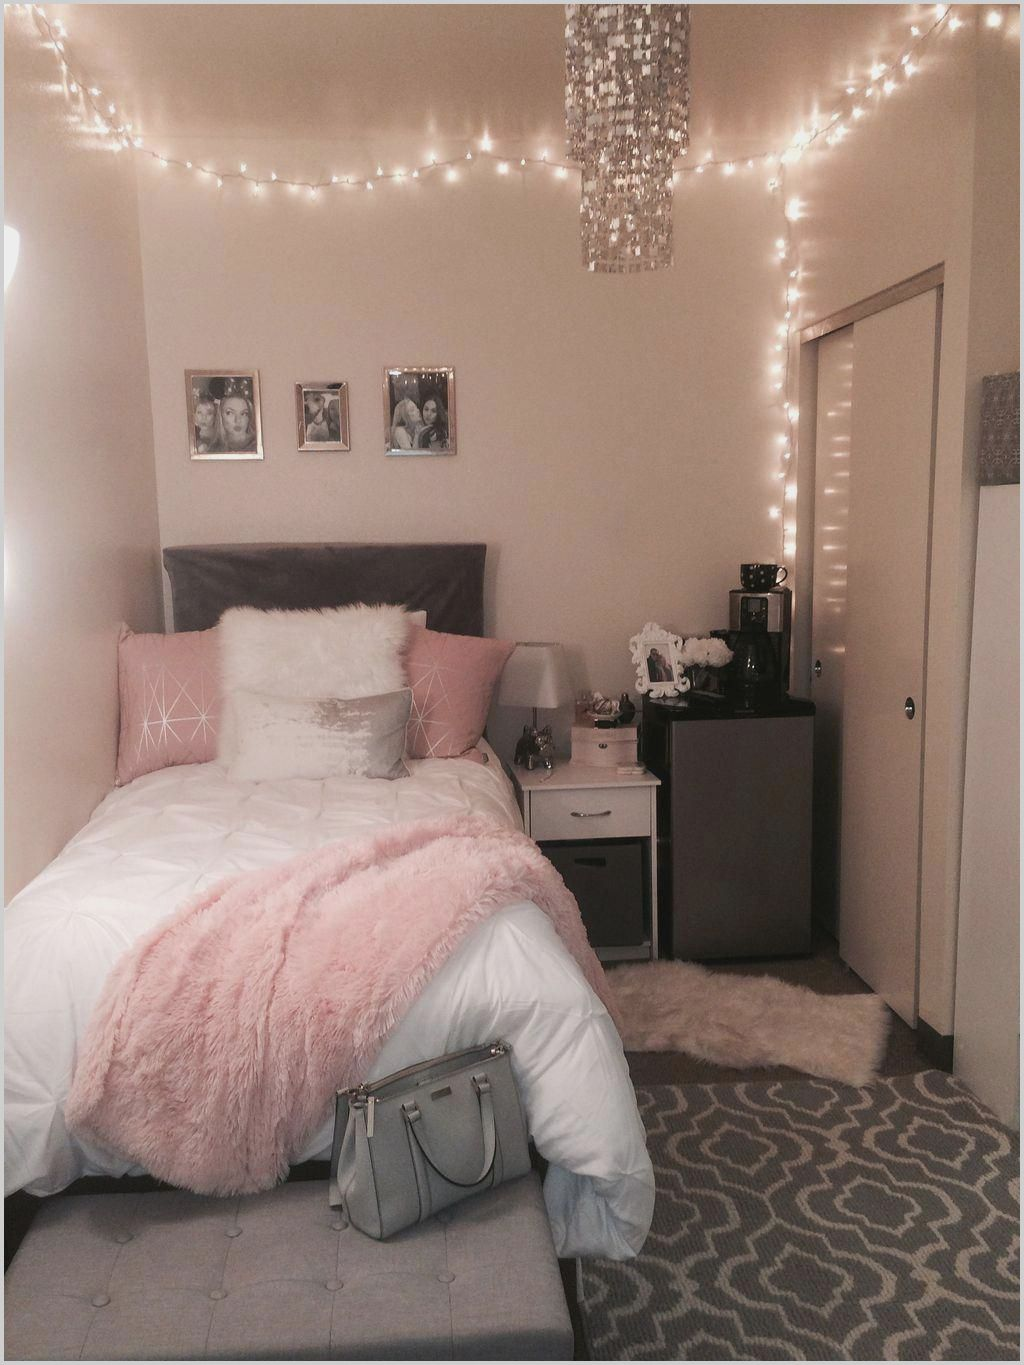 Small Bedroom Decorating Ideas For College Student In 2020 Small Room Bedroom Dorm Room Decor Small Bedroom Decor